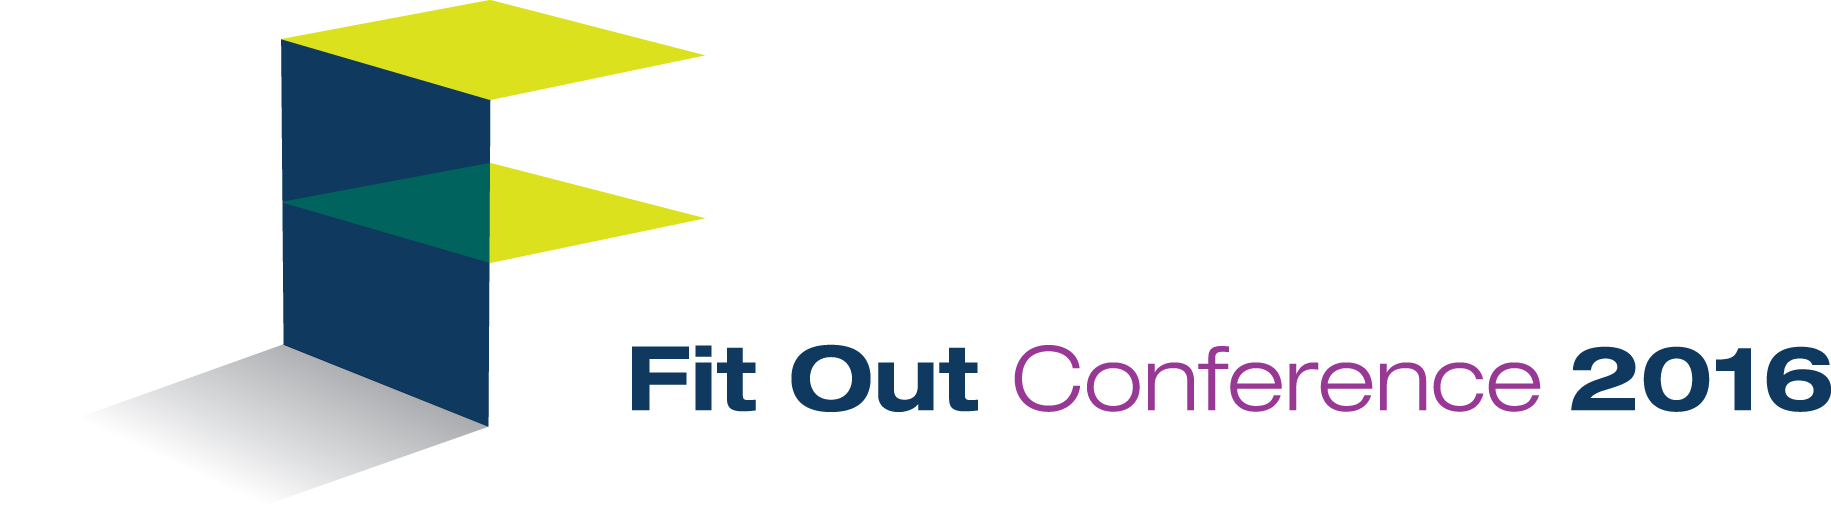 fit-out-conference-2016